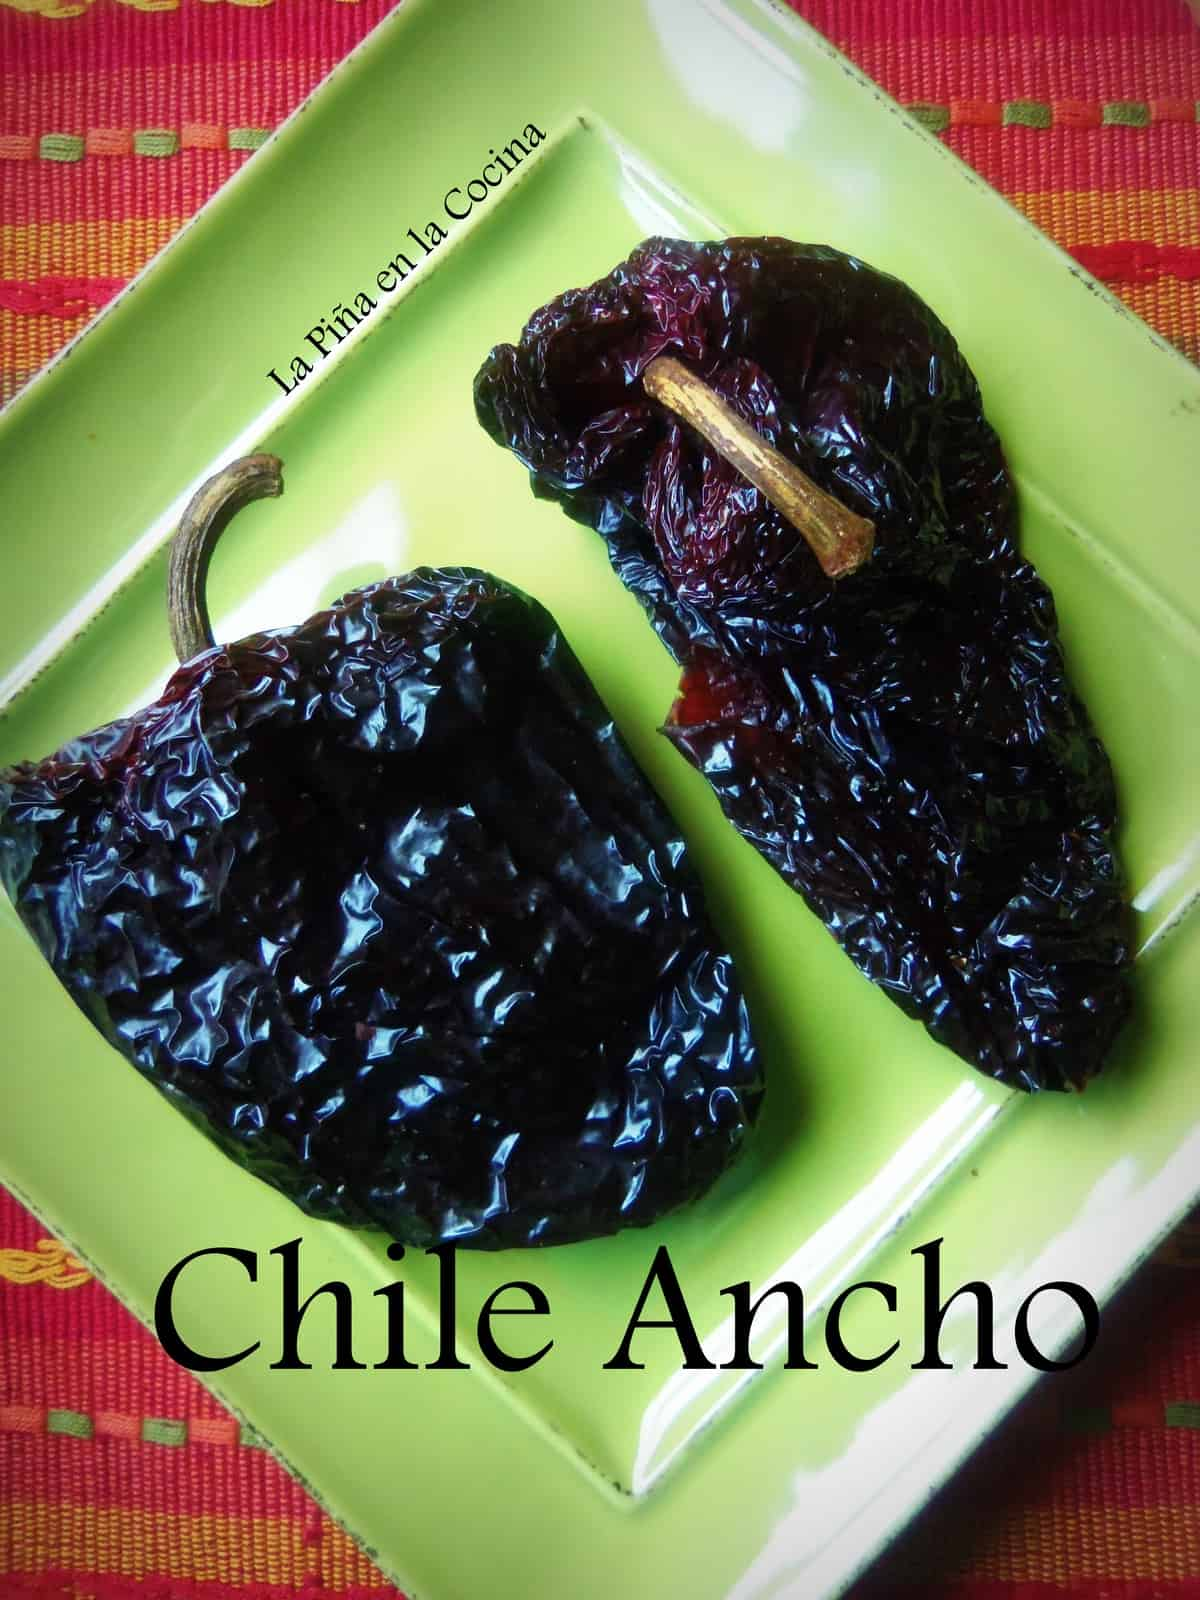 Chile Ancho has to be one of my most favorite of the dried chile peppers.